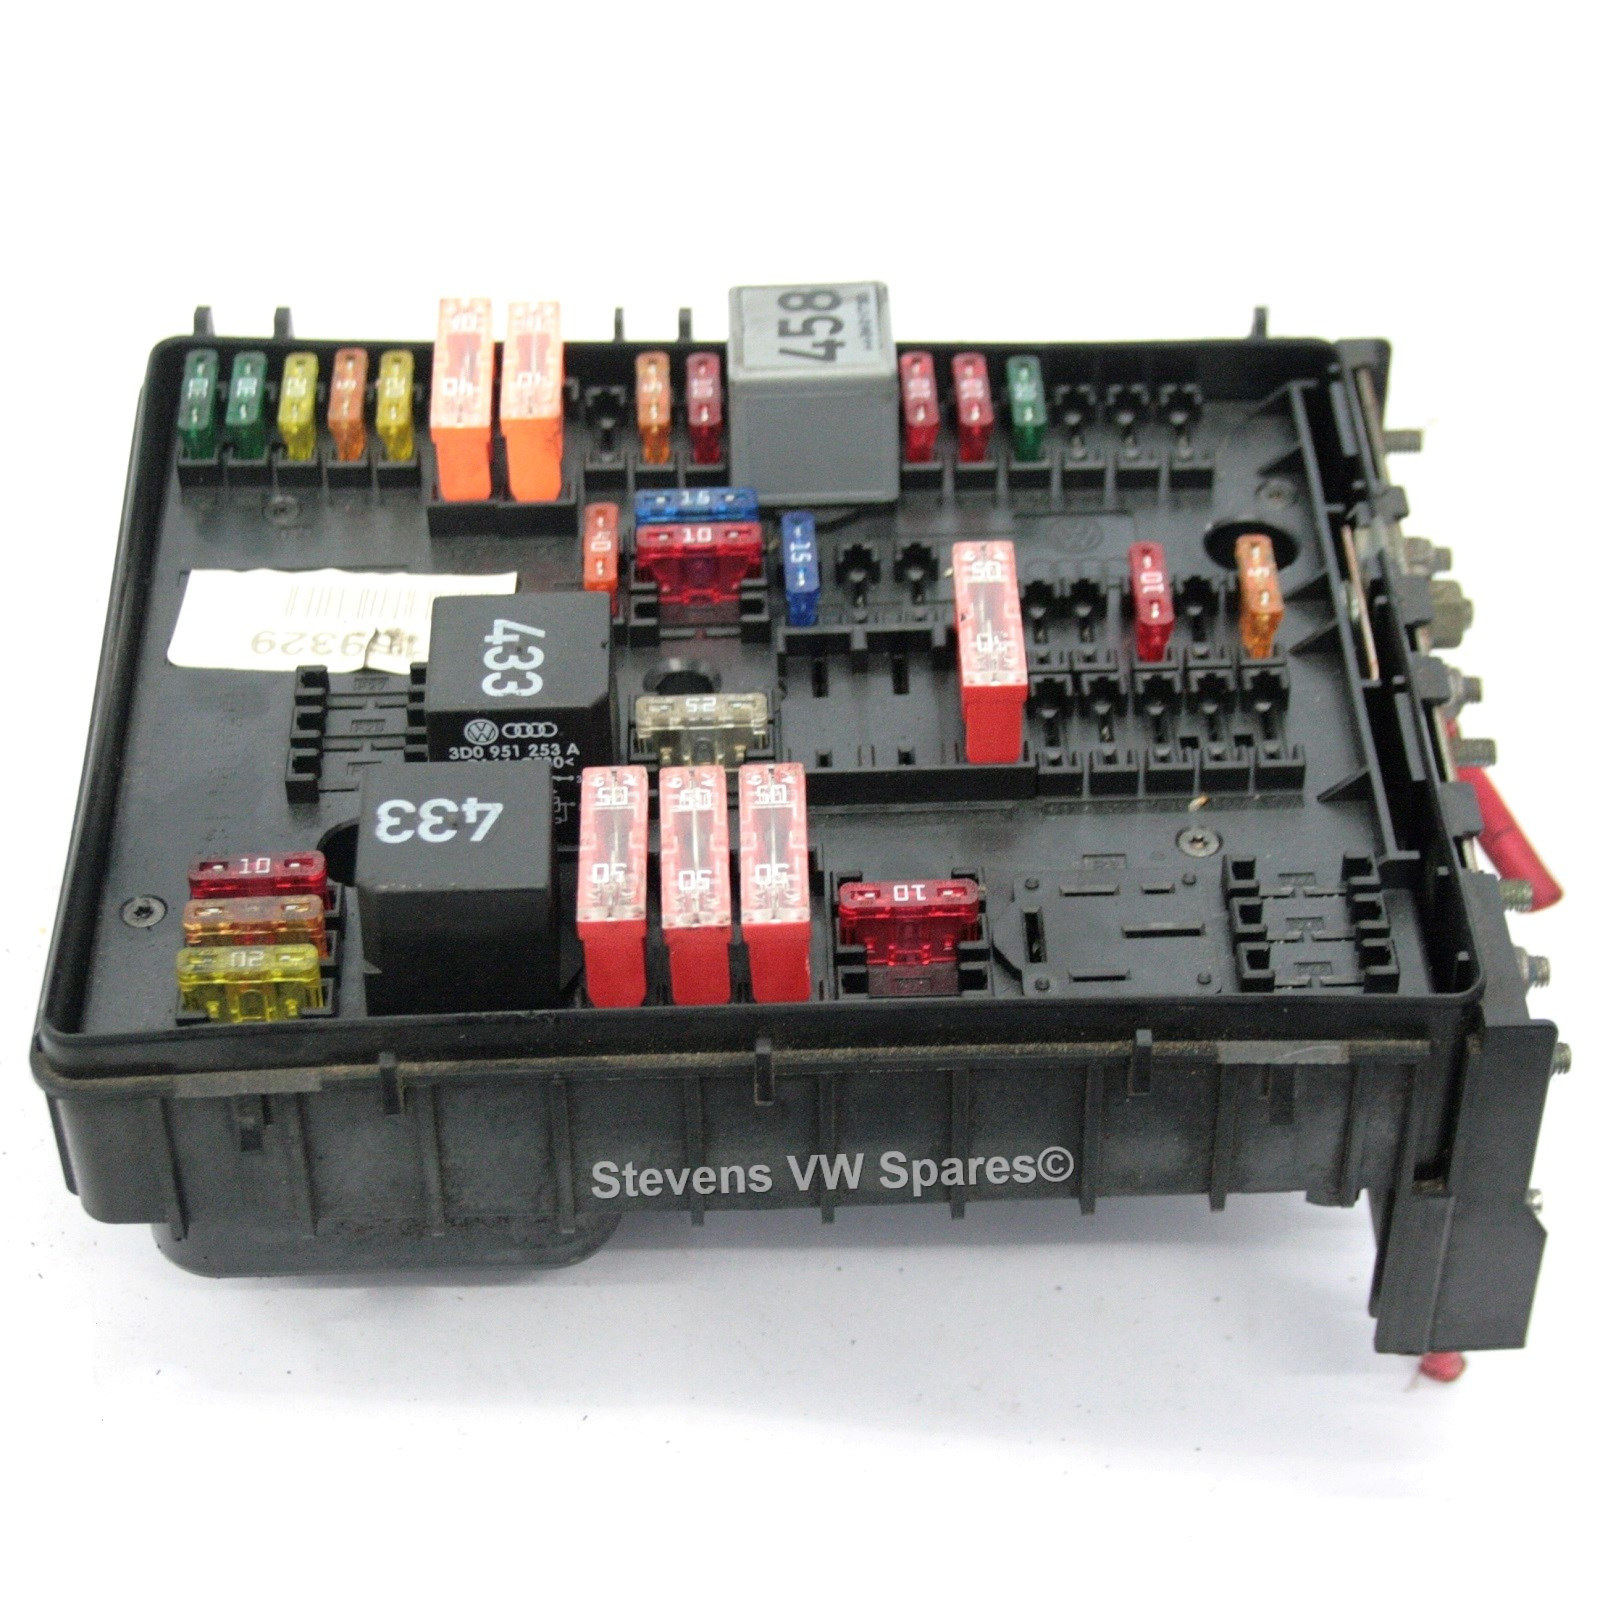 hight resolution of vw golf mk1 fuse box layout basic electronics wiring diagramvw caddy mk1 fuse box wiring diagramvw